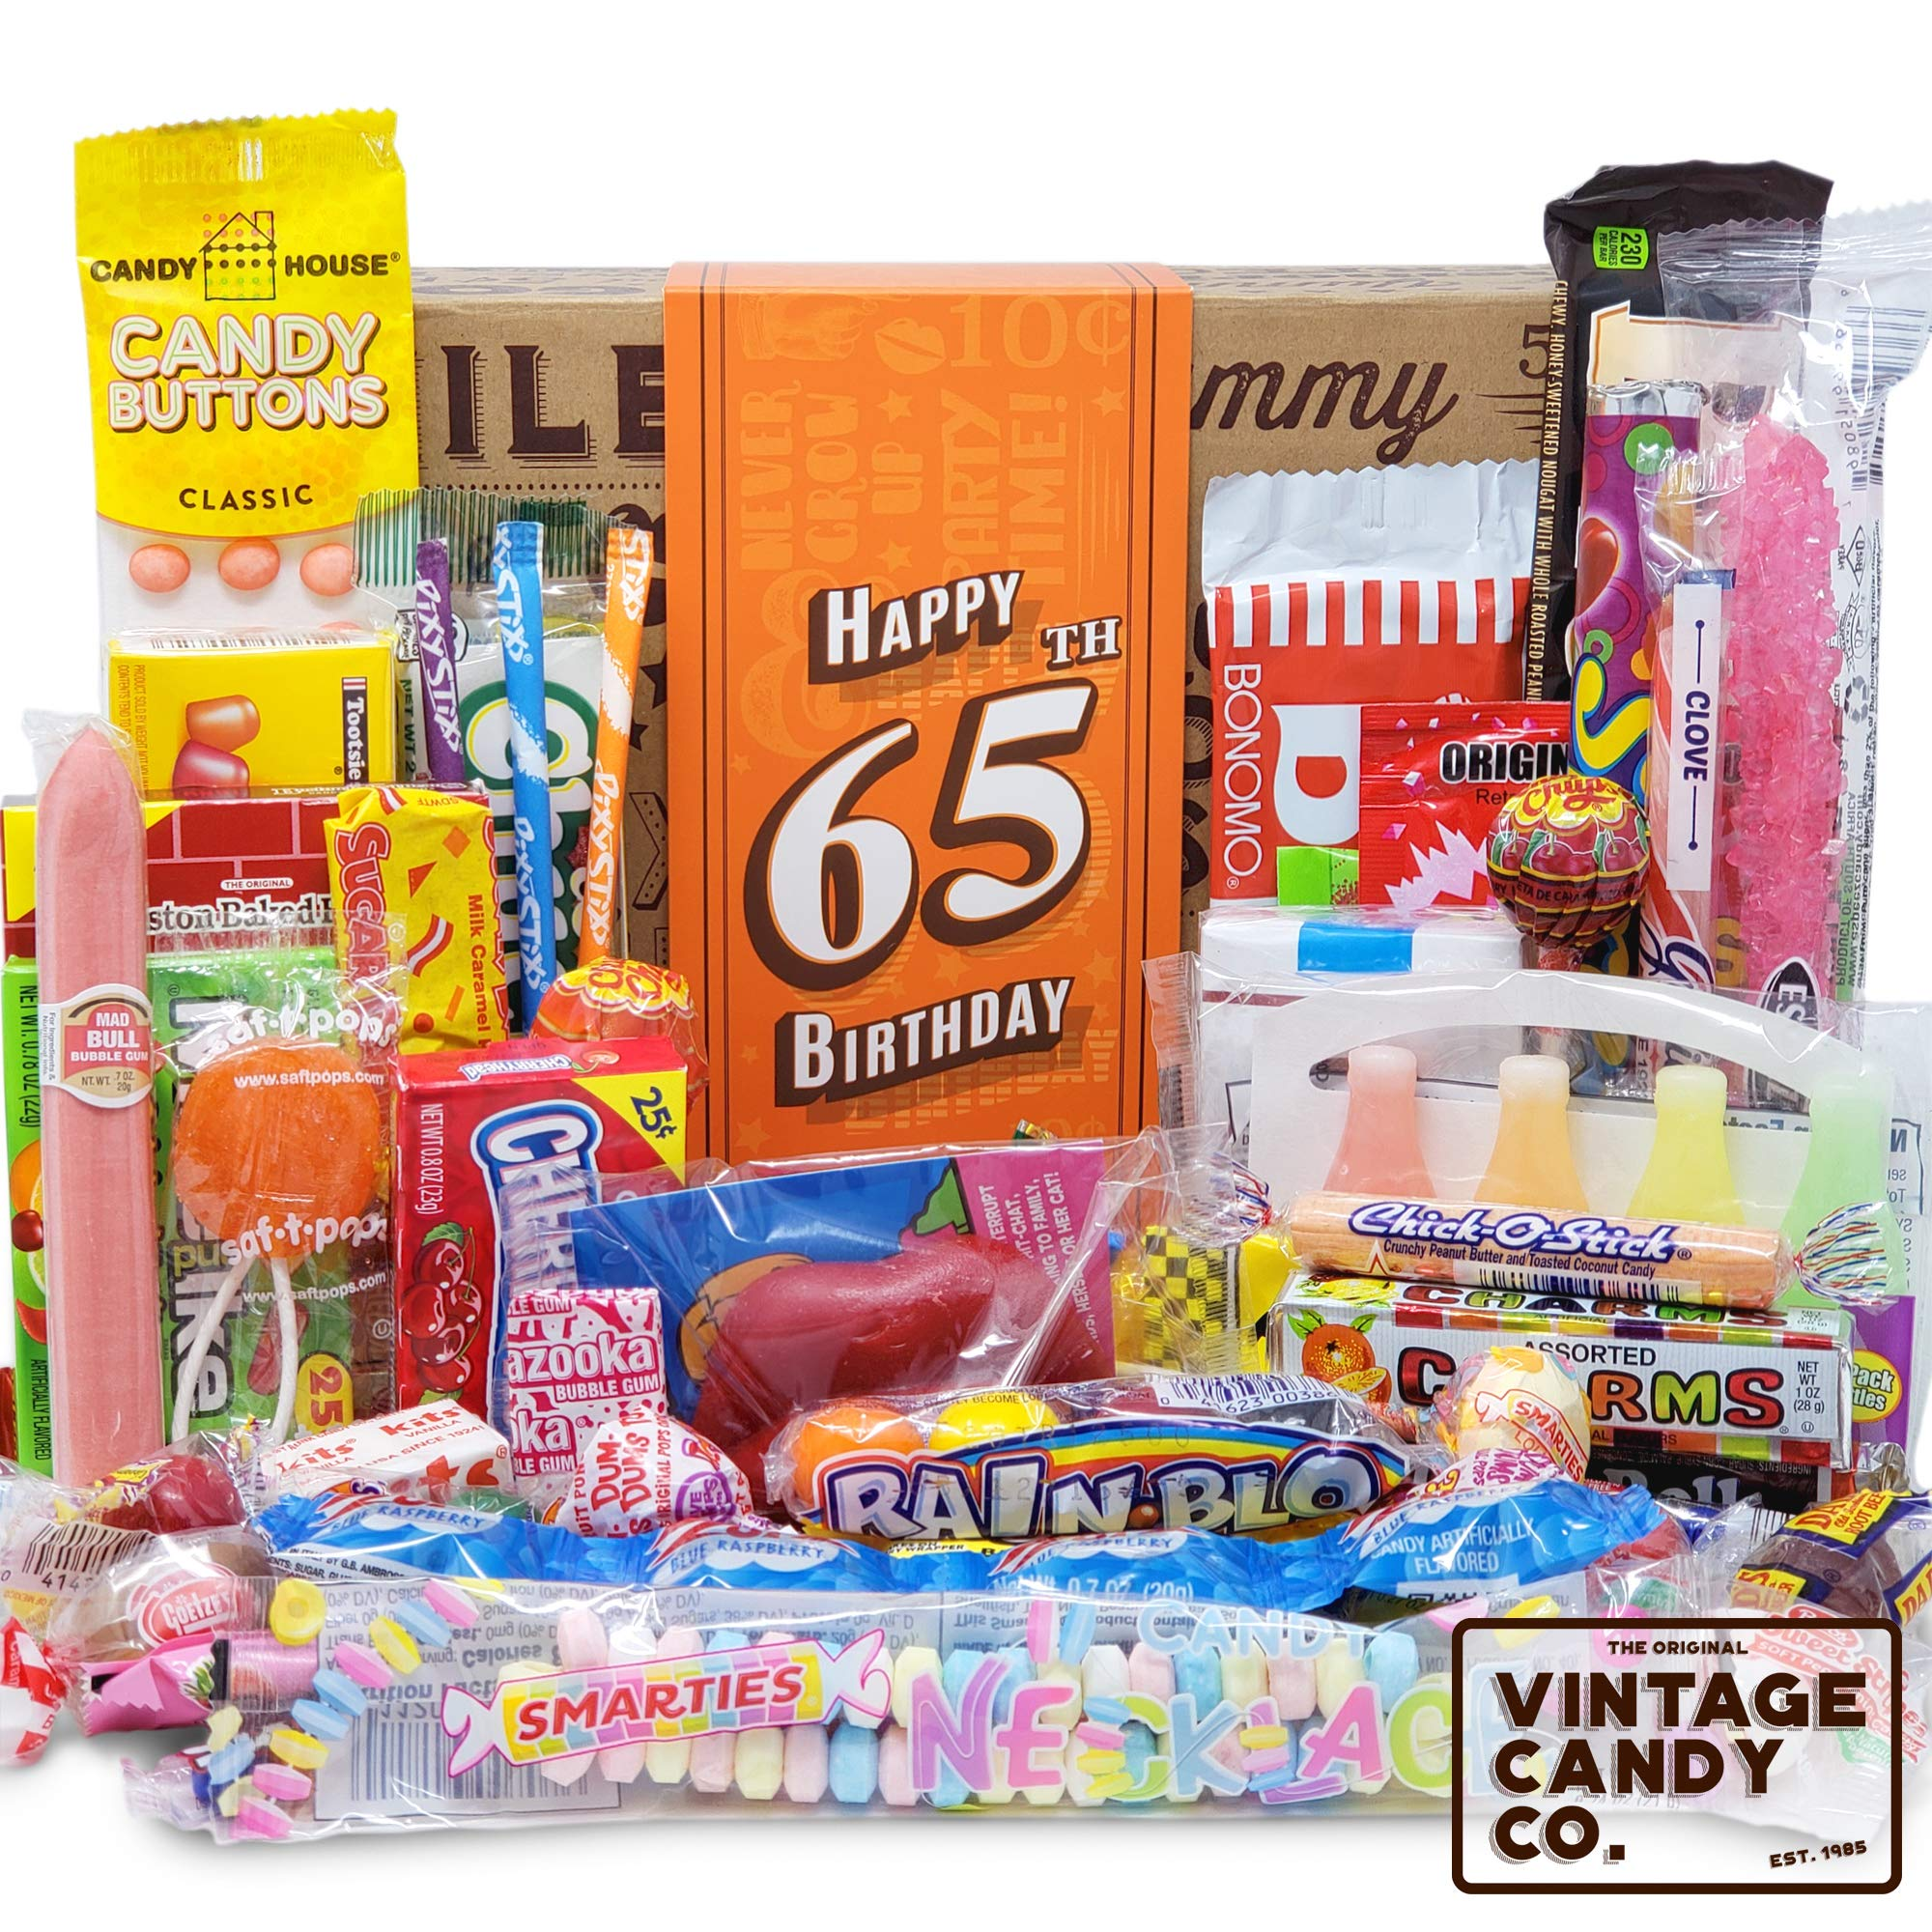 VINTAGE CANDY CO. 65TH BIRTHDAY RETRO CANDY GIFT BOX - 1954 Decade Childhood Nostalgia Candies - Fun Funny Gag Gift Basket - Milestone 65 Years Birthday - PERFECT For Man Or Woman Turning Sixty Five by Vintage Candy Co.